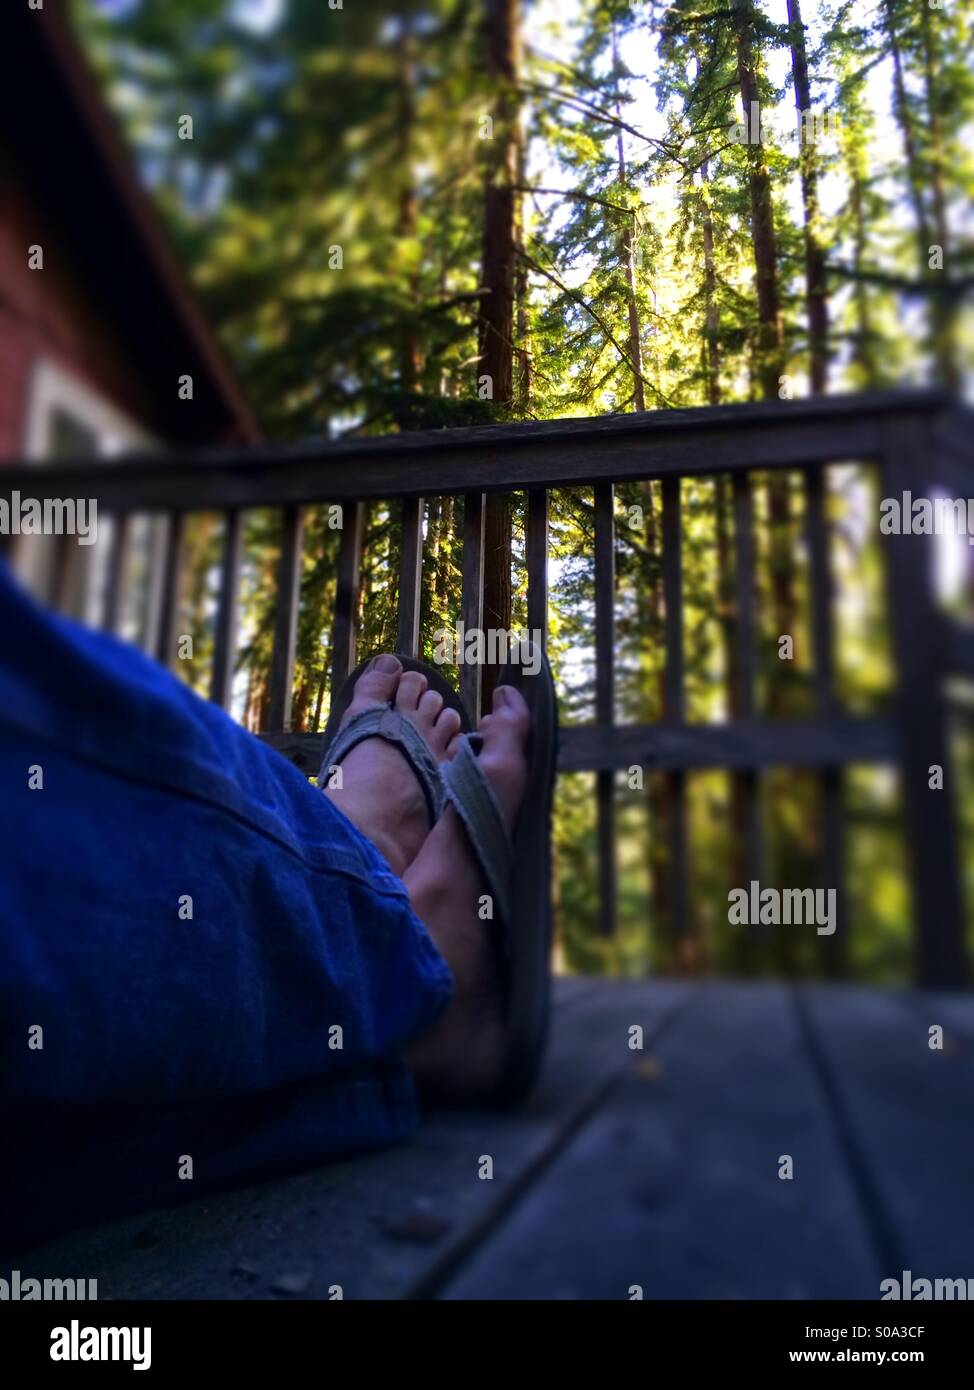 A man's feet crossed while sitting on a deck in a forest. - Stock Image